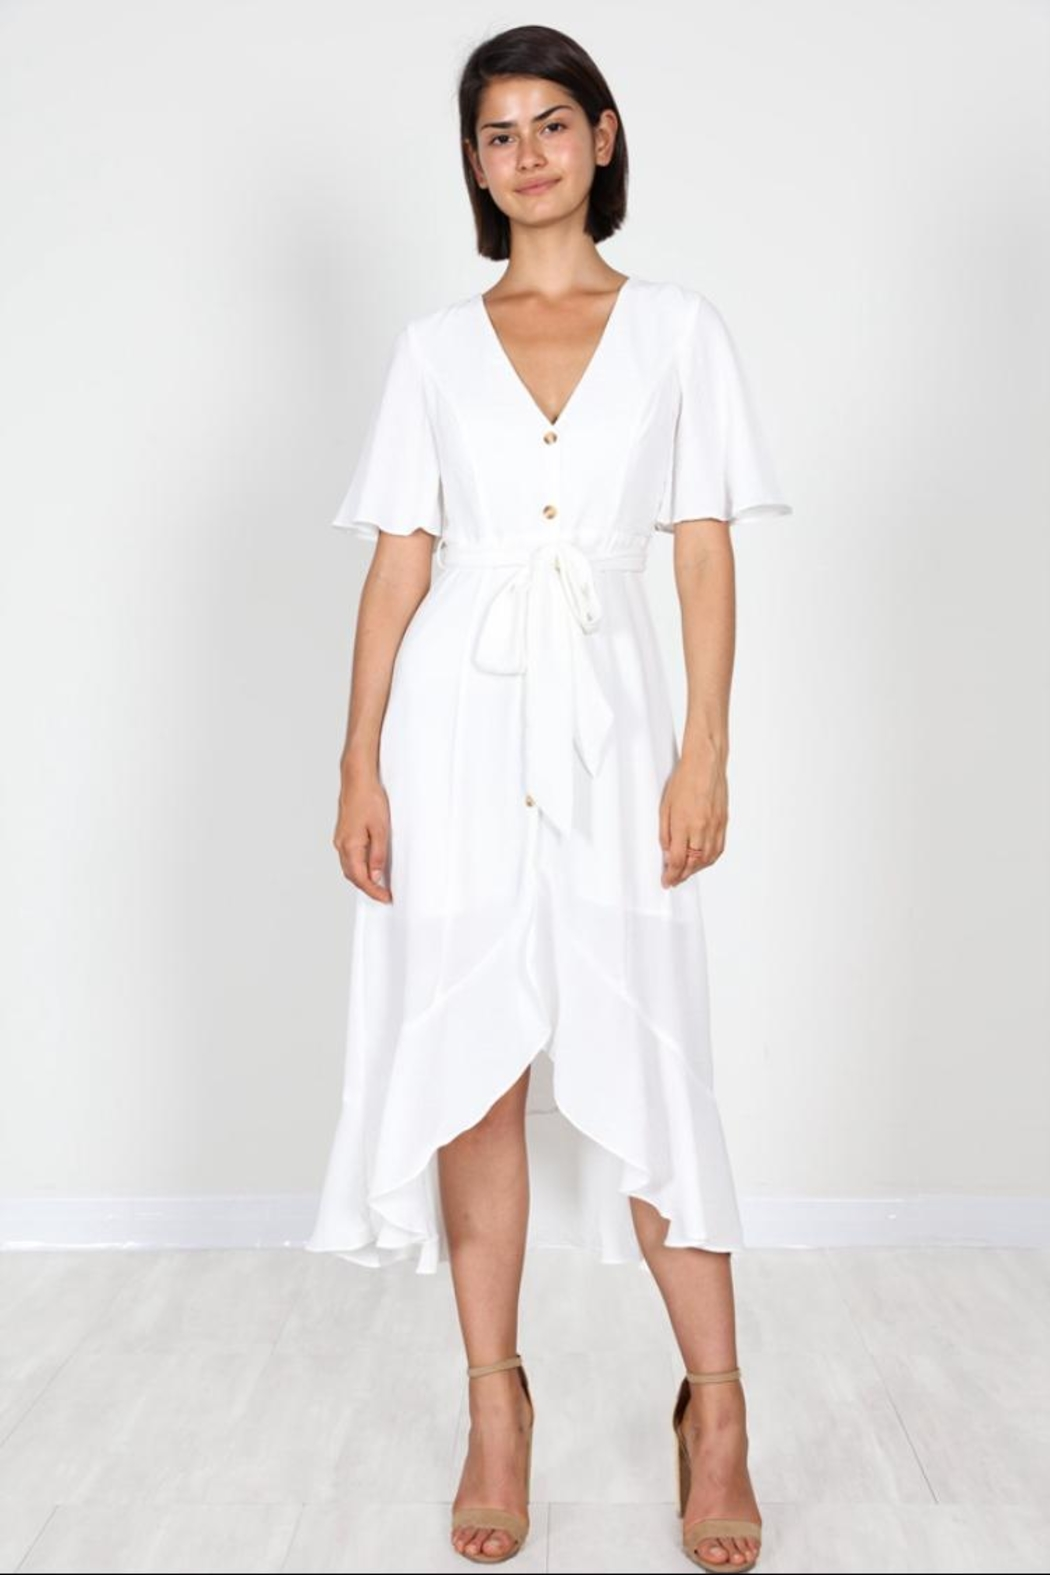 ad2bee819813 essue Off-White Button-Down Dress from Los Angeles by Chikas ...